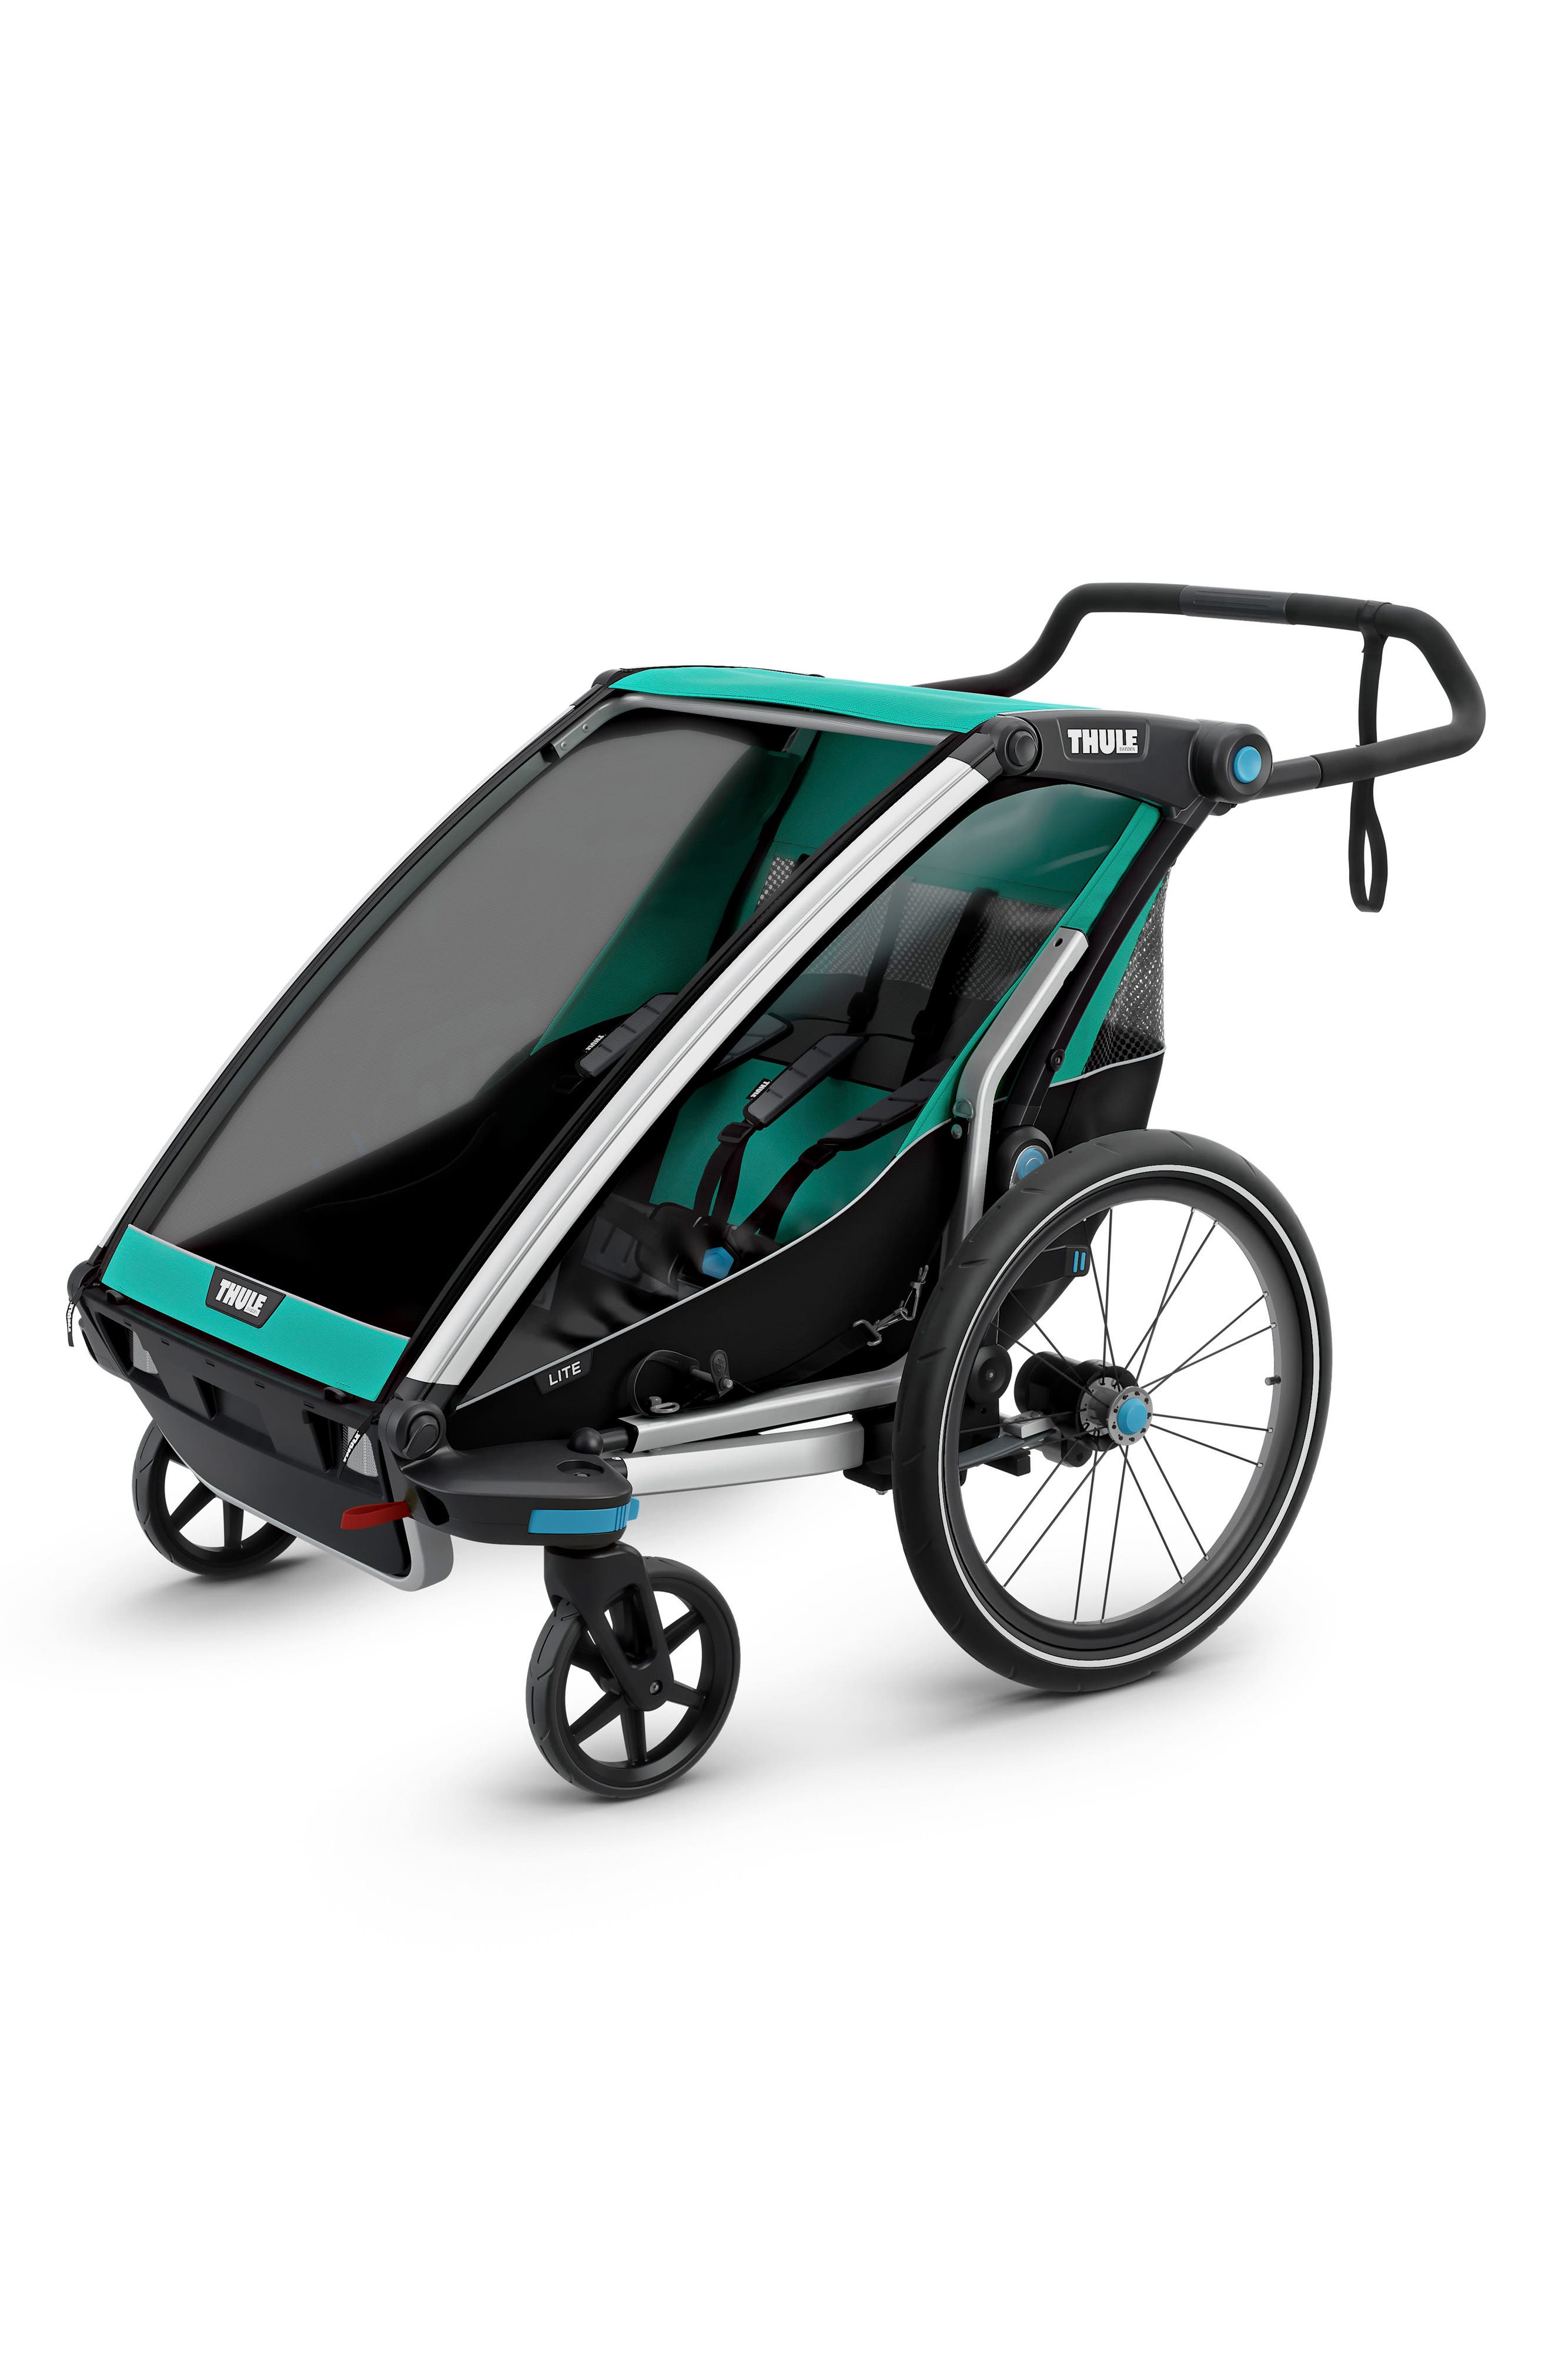 THULE Chariot Lite 2 Multisport Double Cycle Trailer/Stroller, Main, color, 400